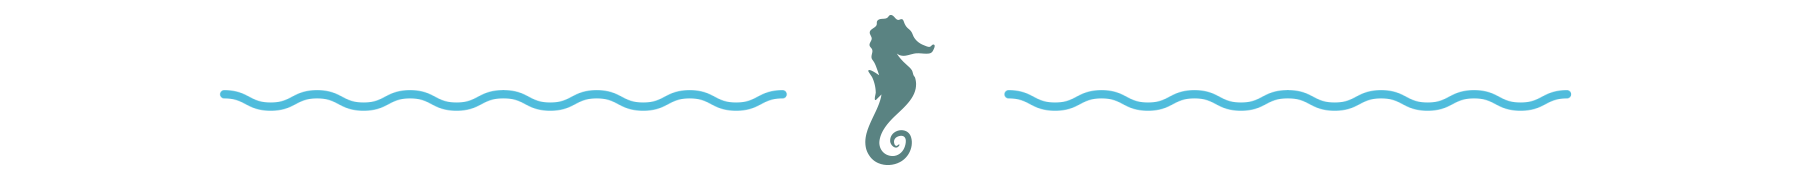 starkey branded divider with seahorse